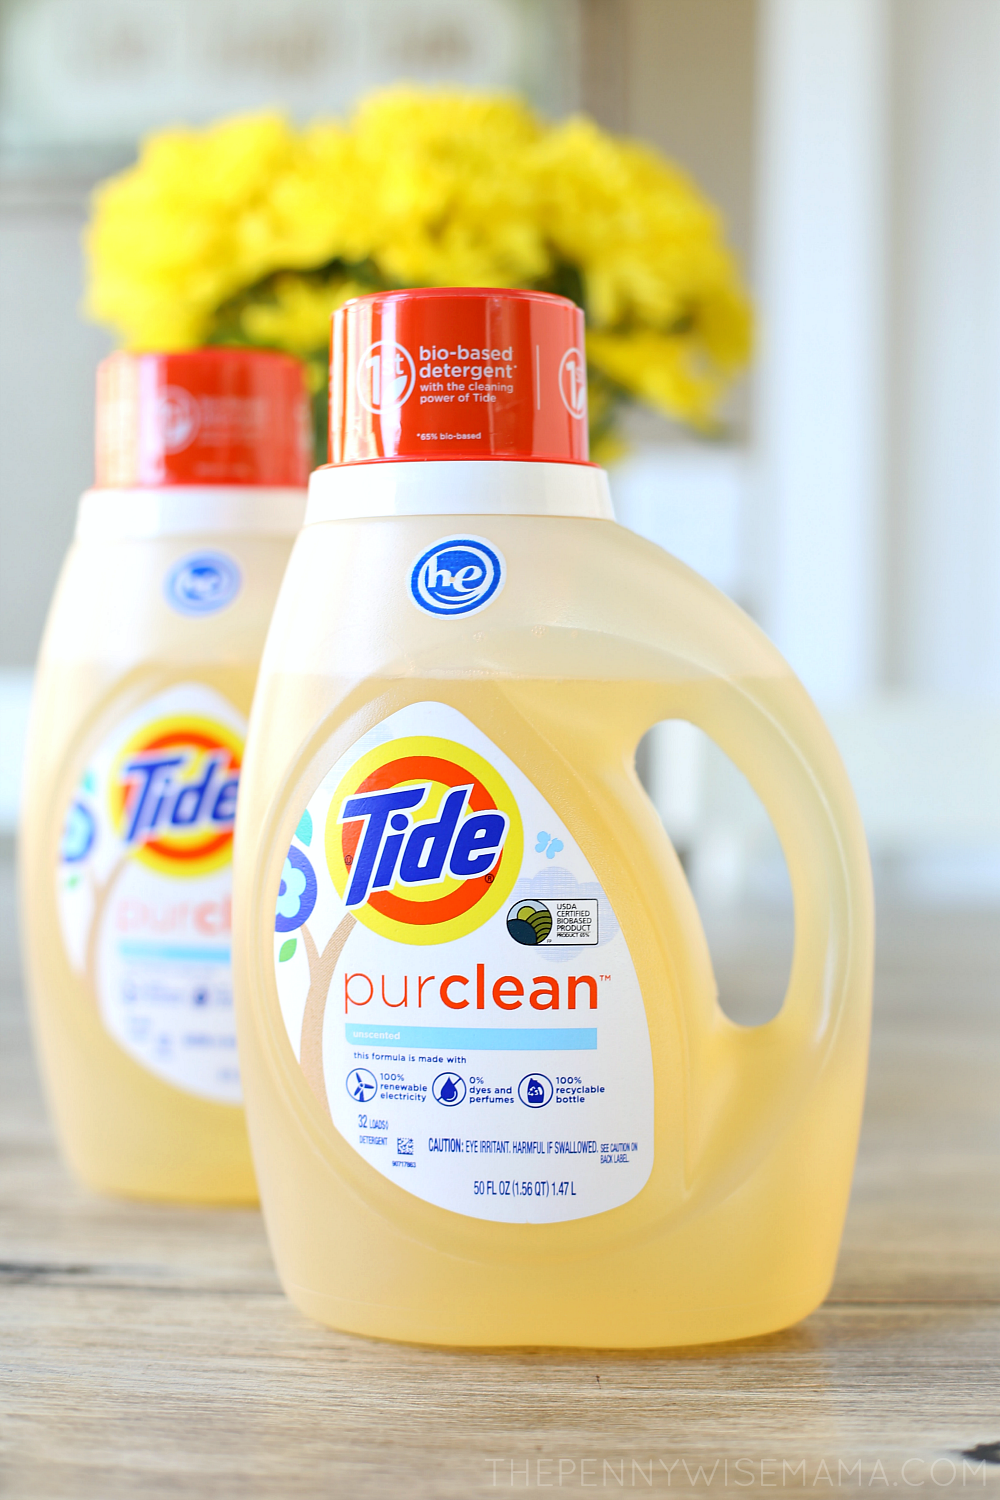 Tide purclean laundry detergent